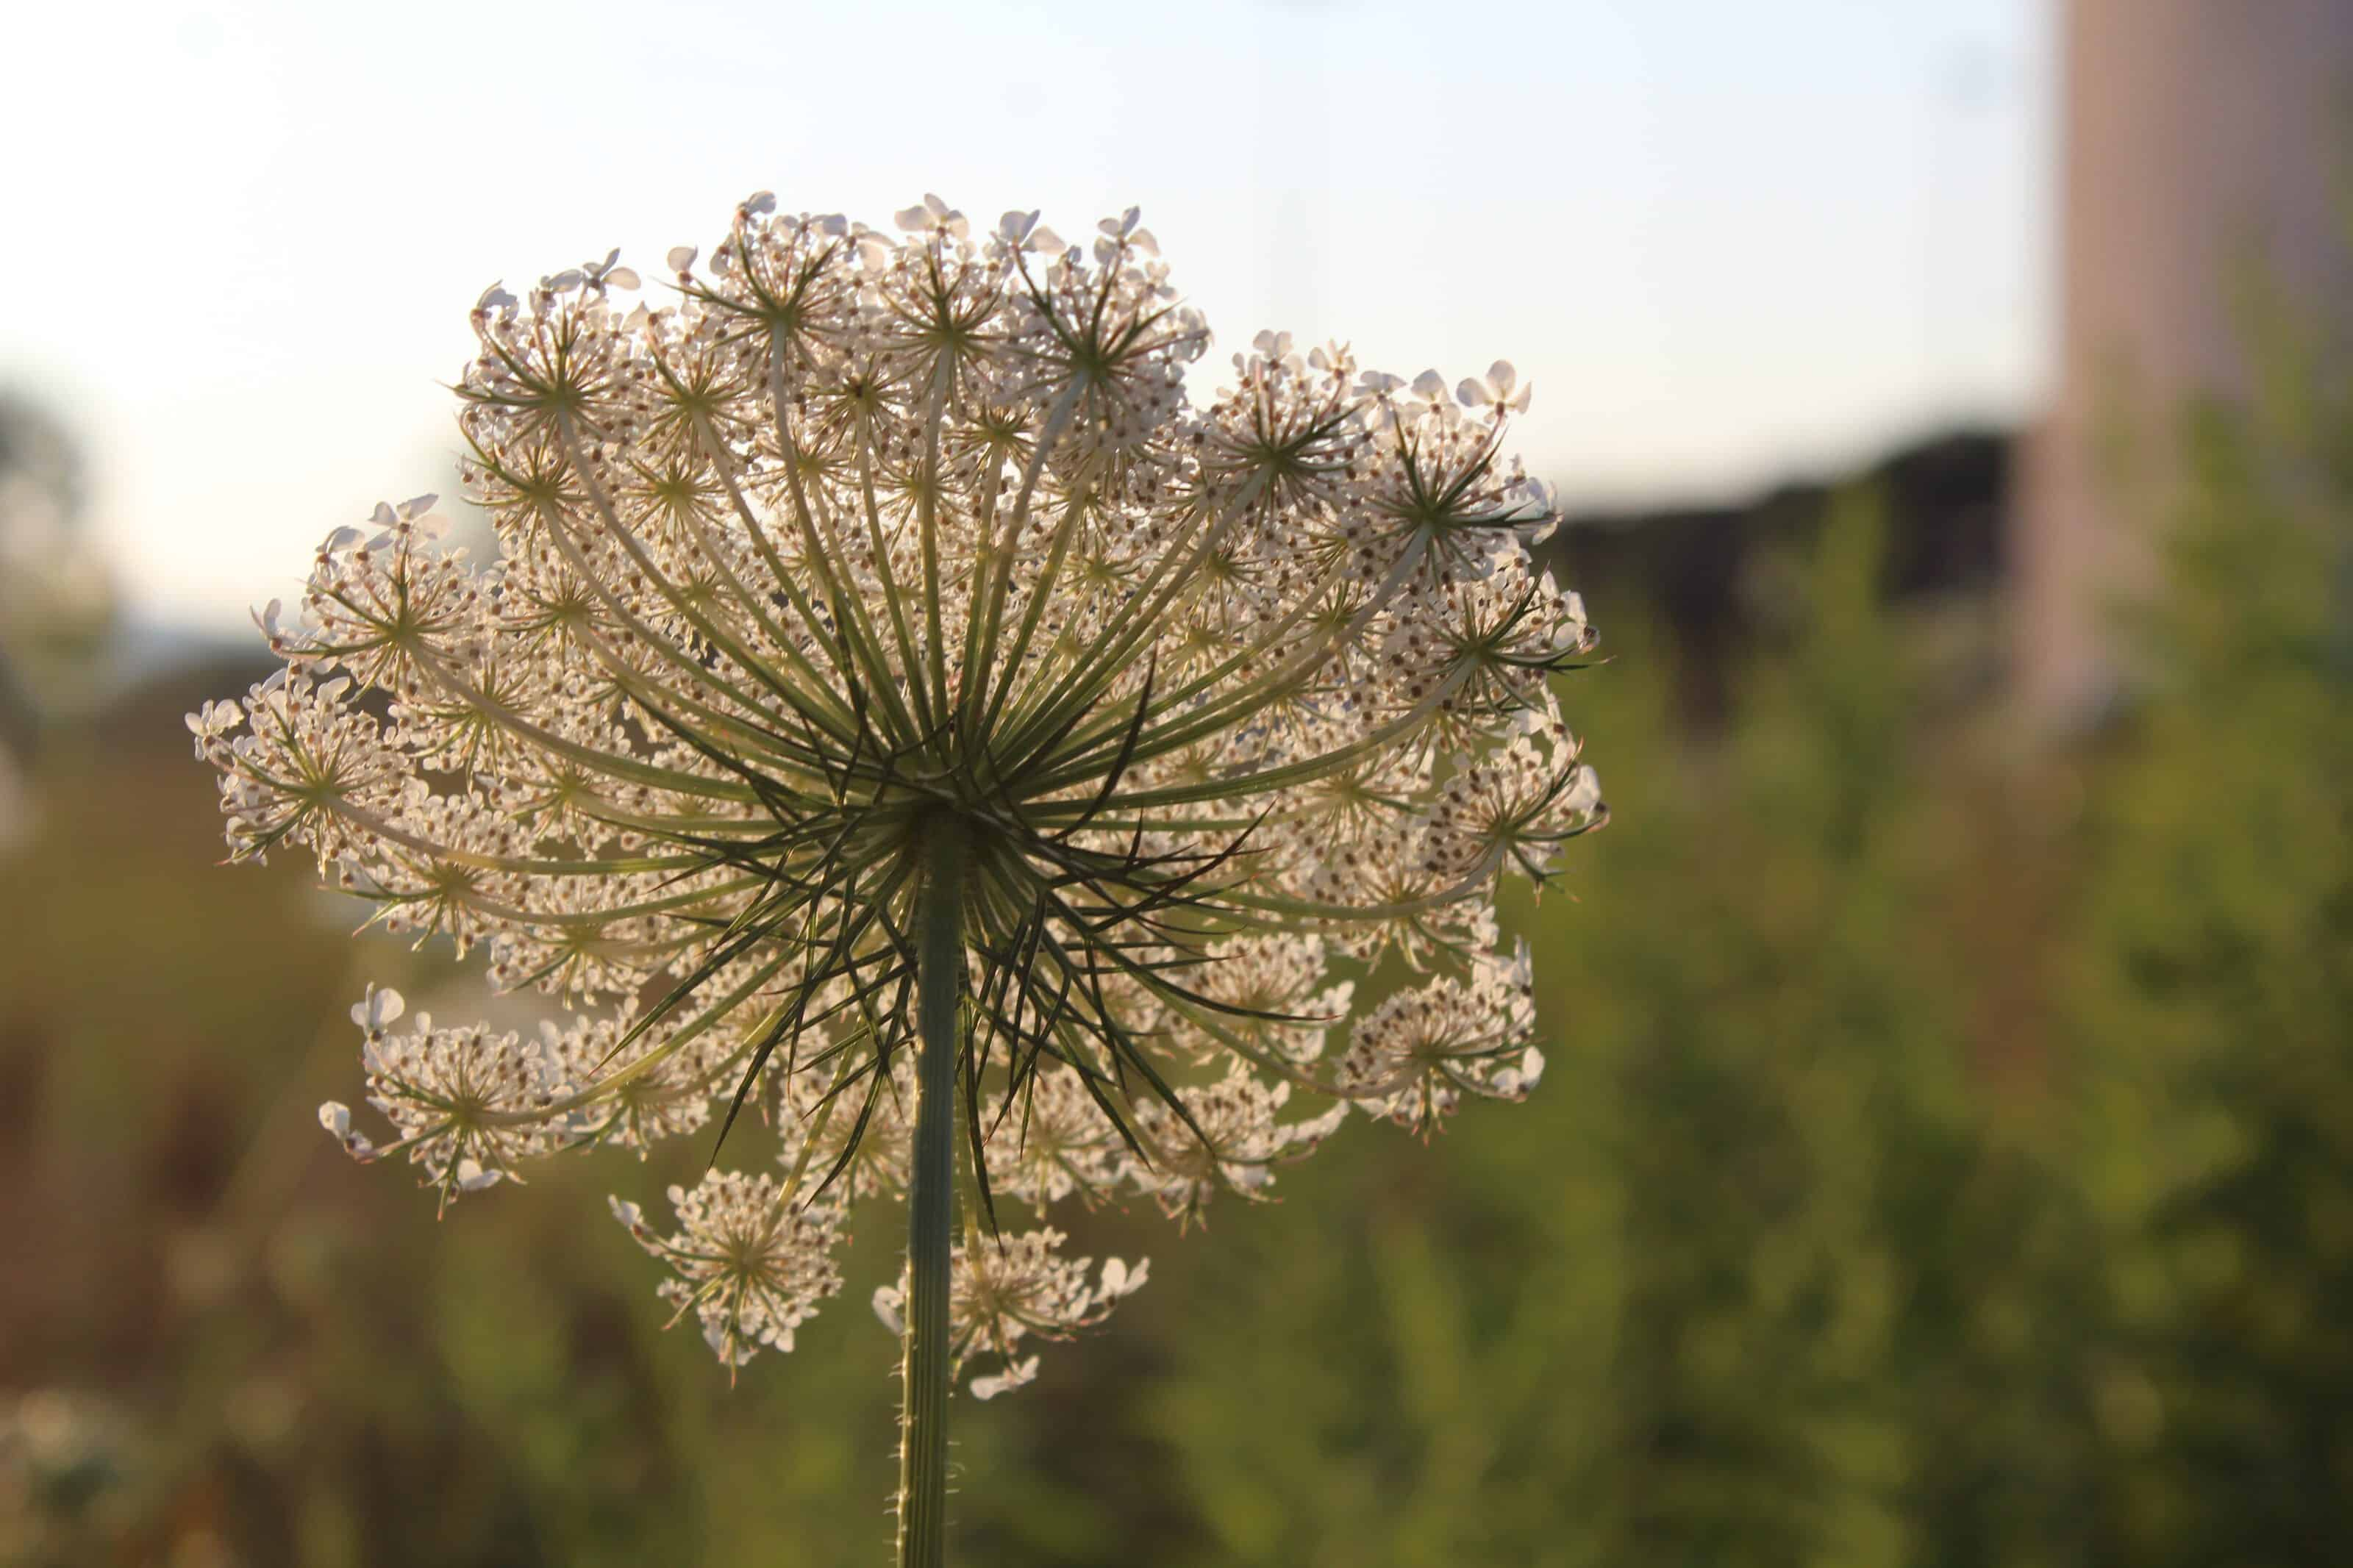 Queen Anne's Lace blooms along the roads and in the fields in high summer. Photo by Thom Smith